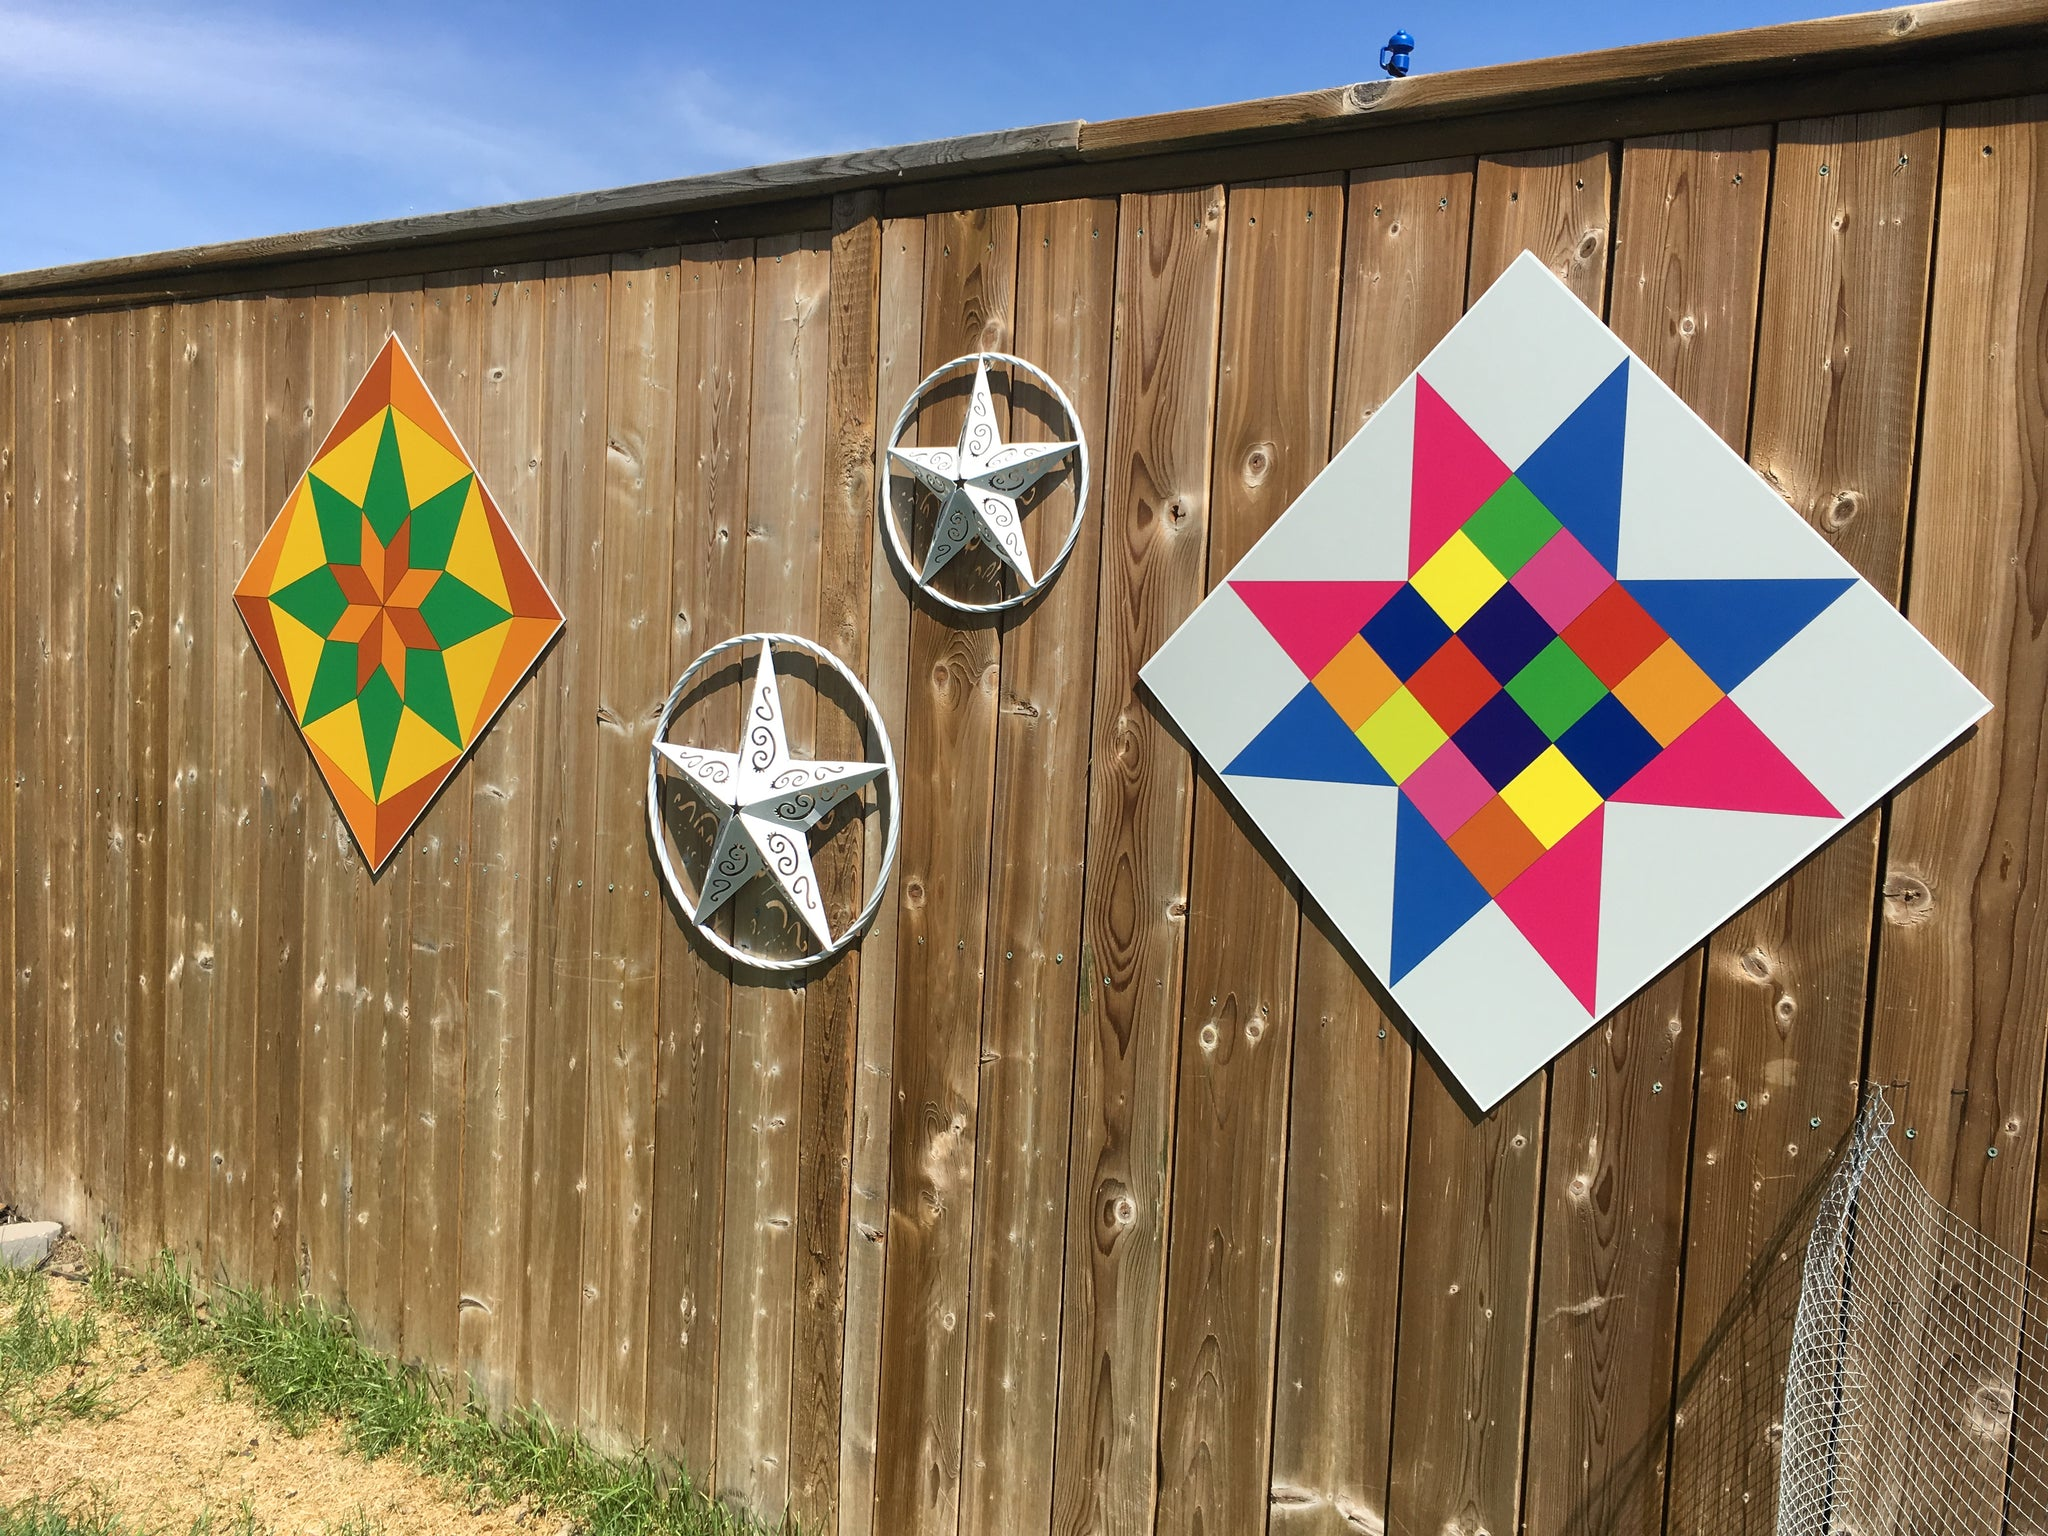 Playtime - Quilt Designs in the Yard